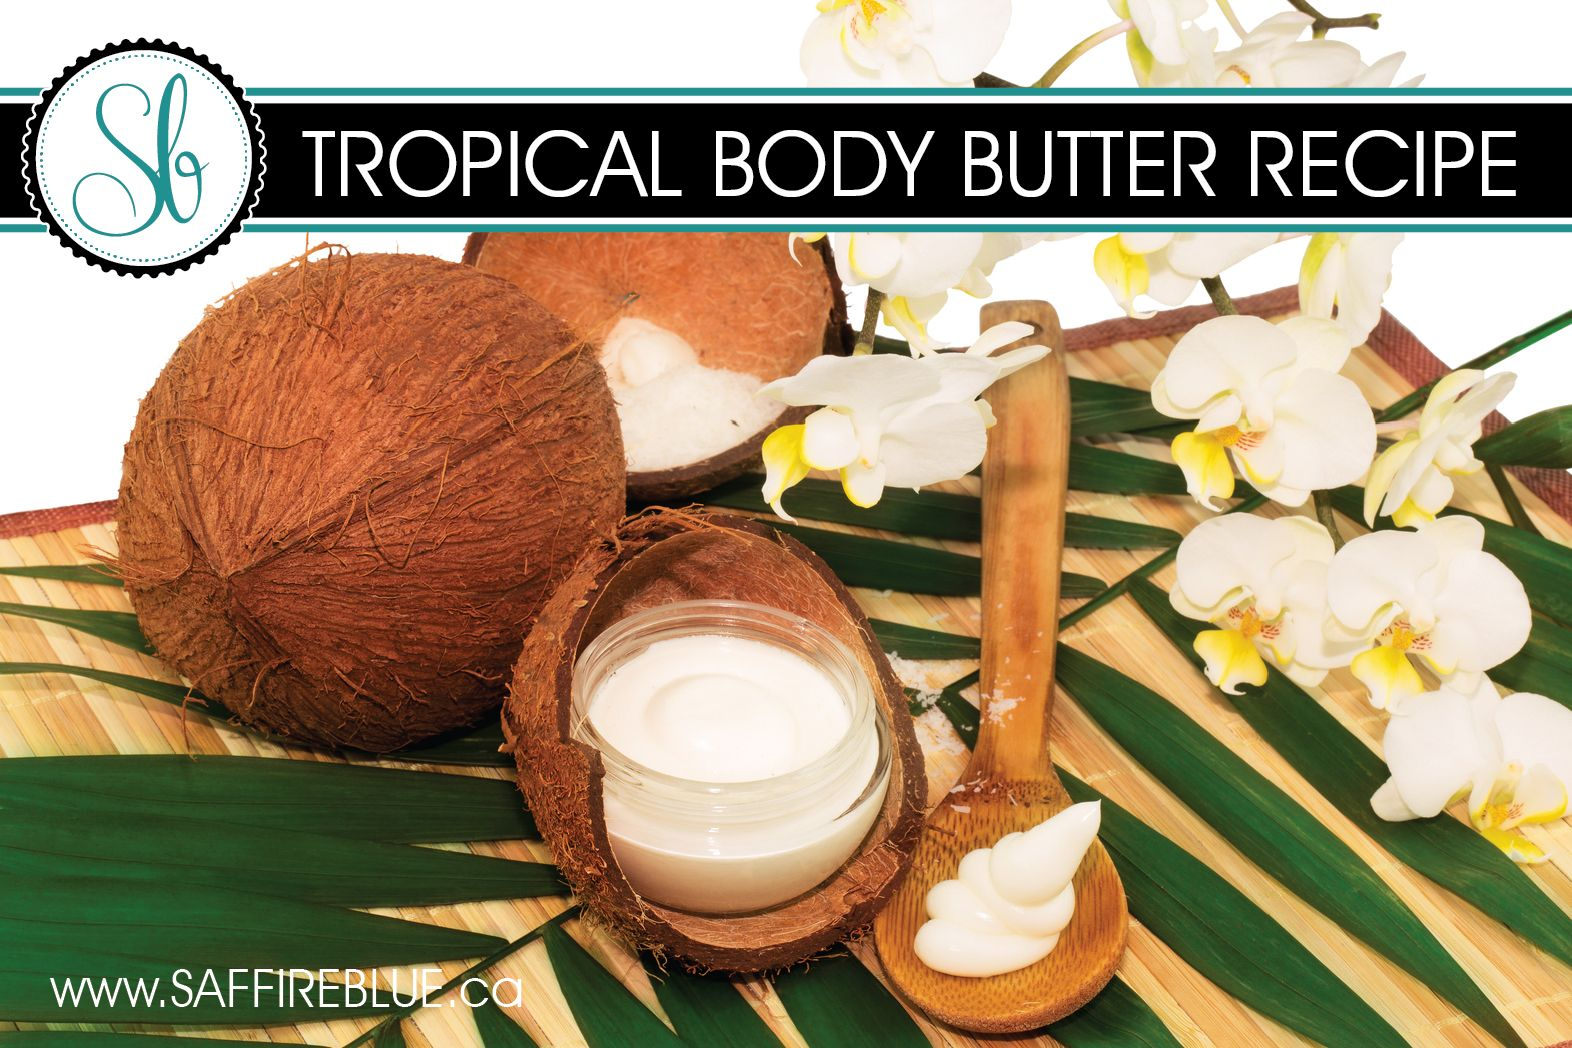 Absolutely Yummy Tropical Body Butter Recipe saffireblue